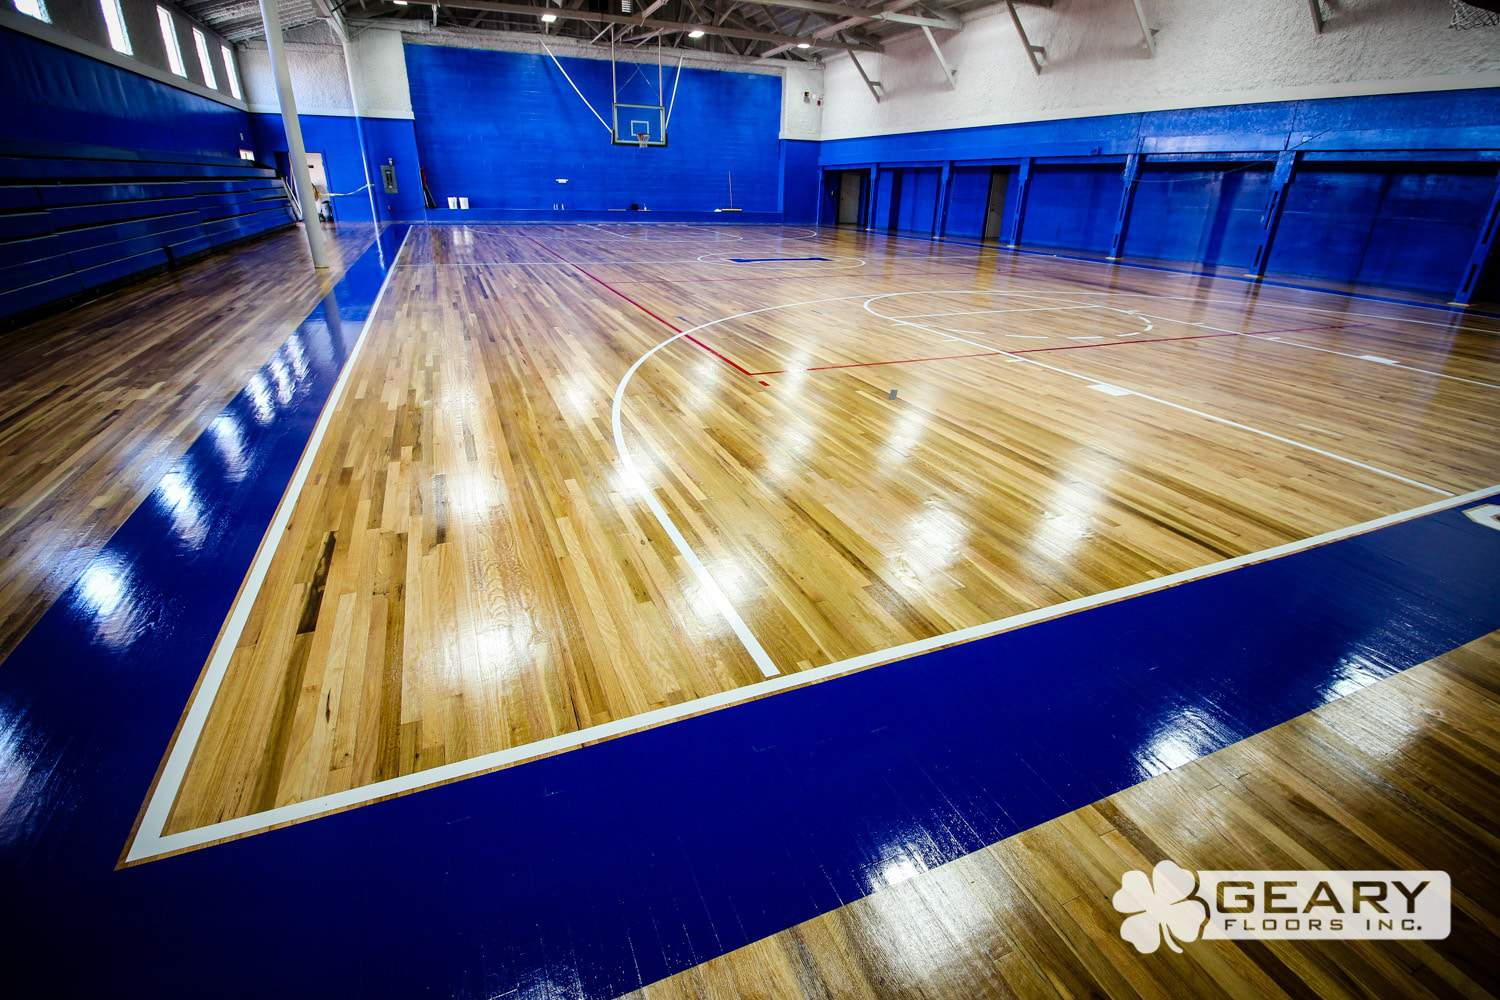 Geary Flooring Immanuel Athletic Flooring IMG 3442 - Immanuel High School (Reedley, CA) - Hardwood Flooring San Diego